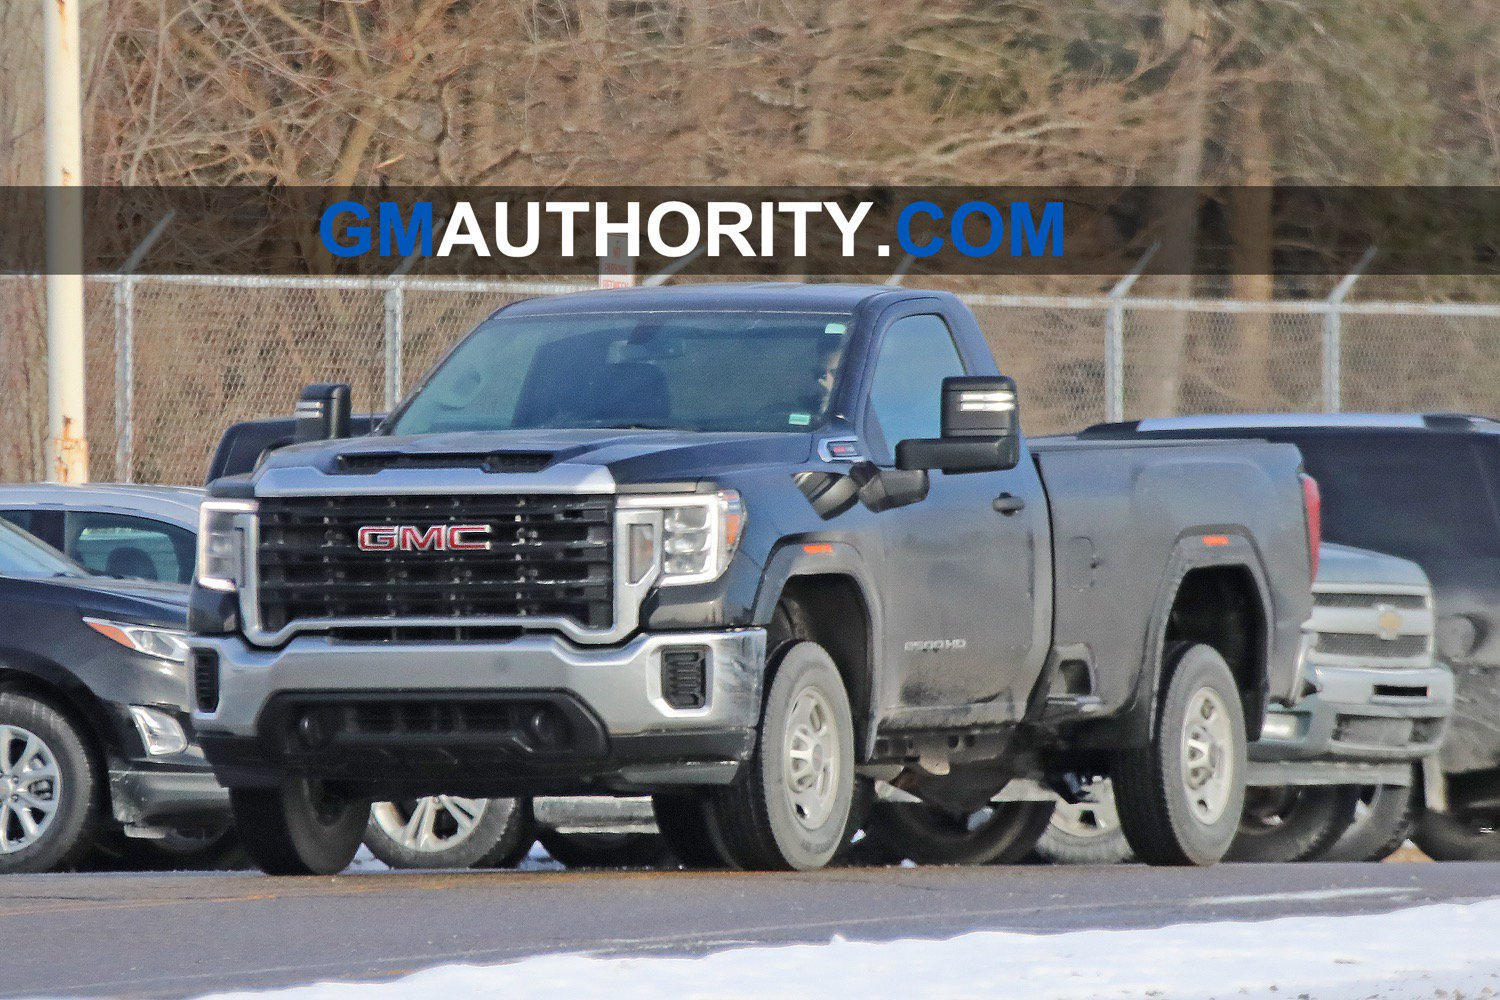 First Look At 2020 Gmc Sierra Hd Regular Cab: Photo Gallery | Gm 2020 Gmc Sierra 2500Hd Regular Cab